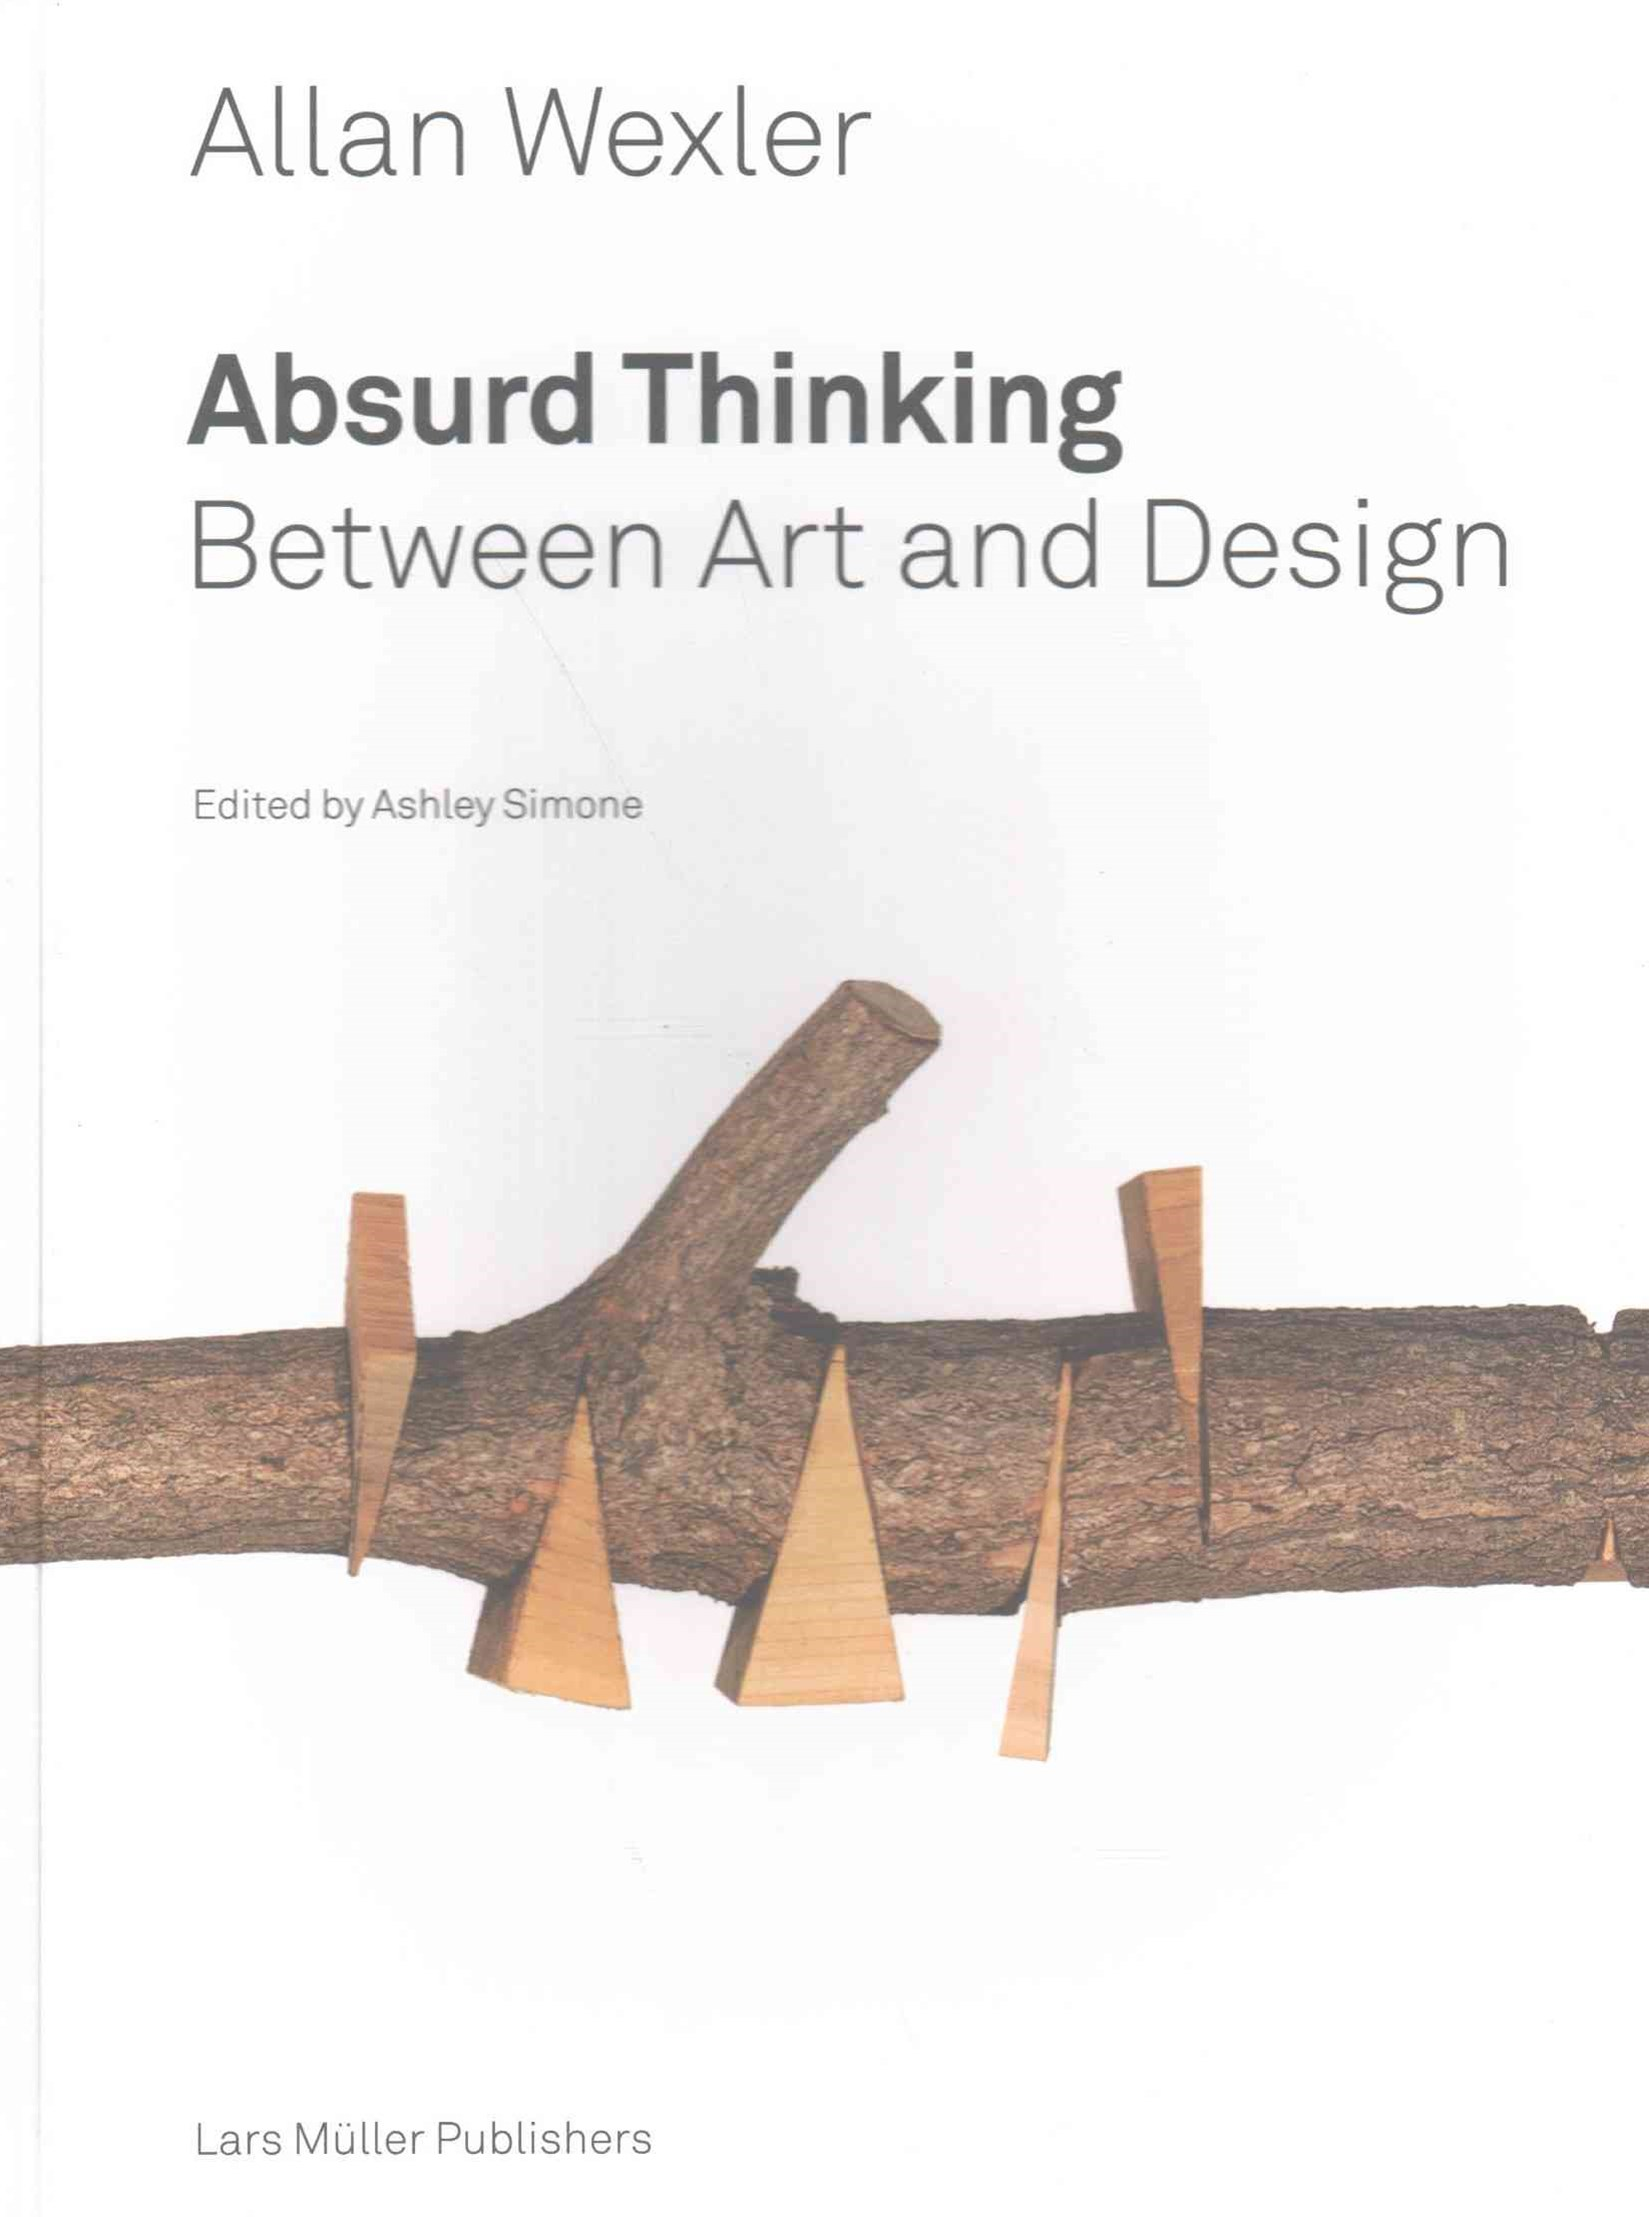 Allan Wexler: Absurd Thinking-Between Art and Design